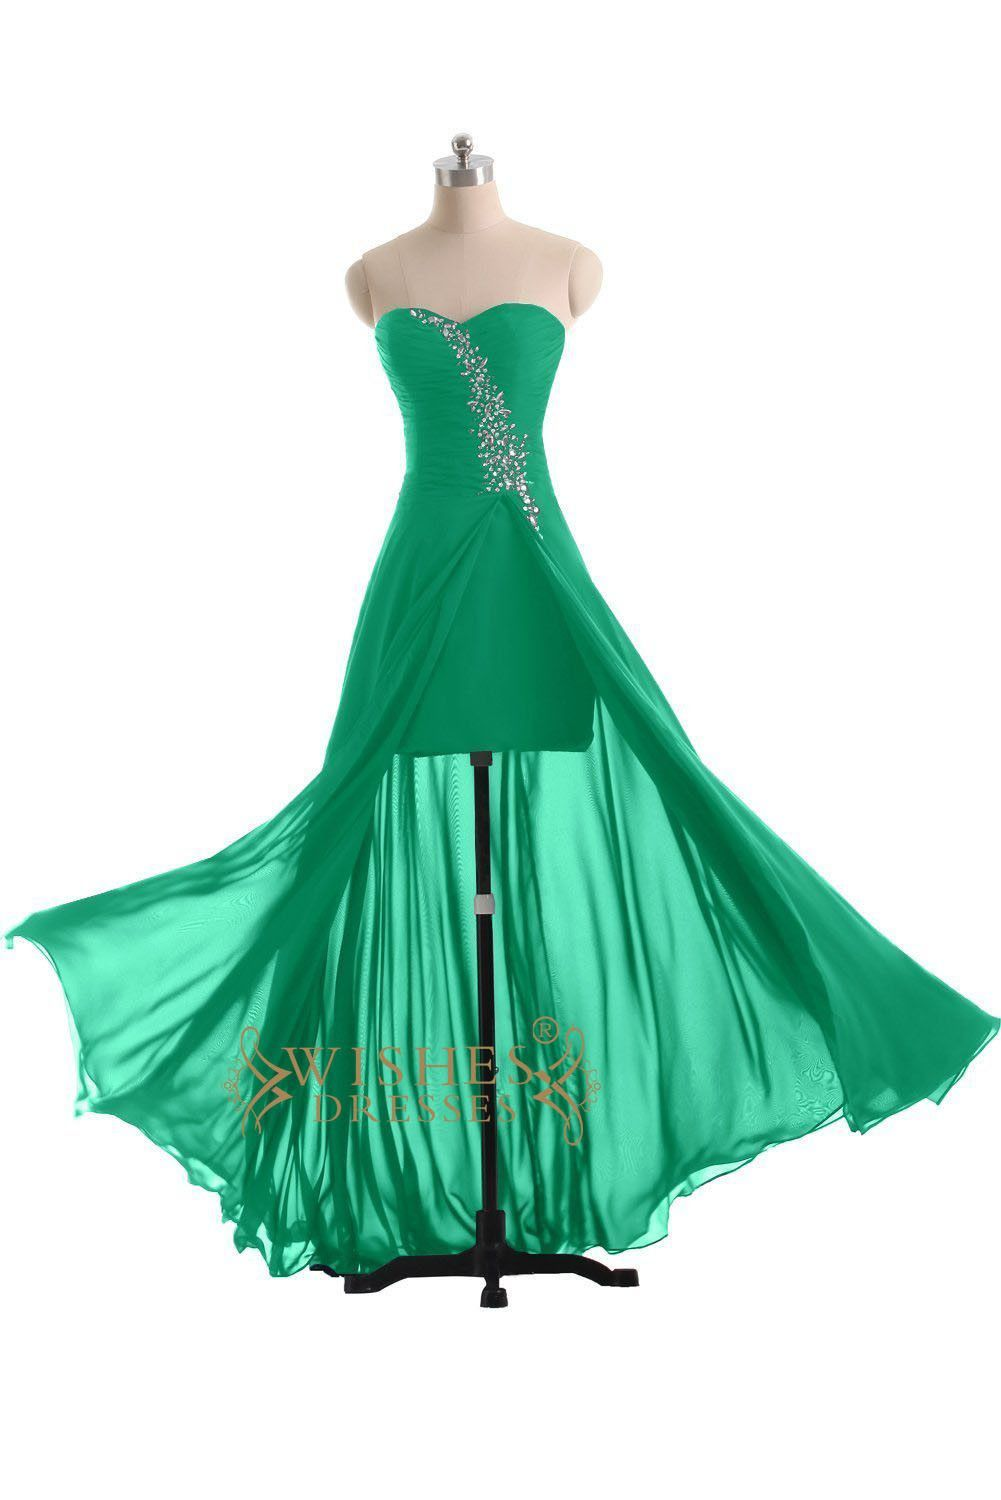 High low chiffon green cocktail dress prom dress homecoming dress